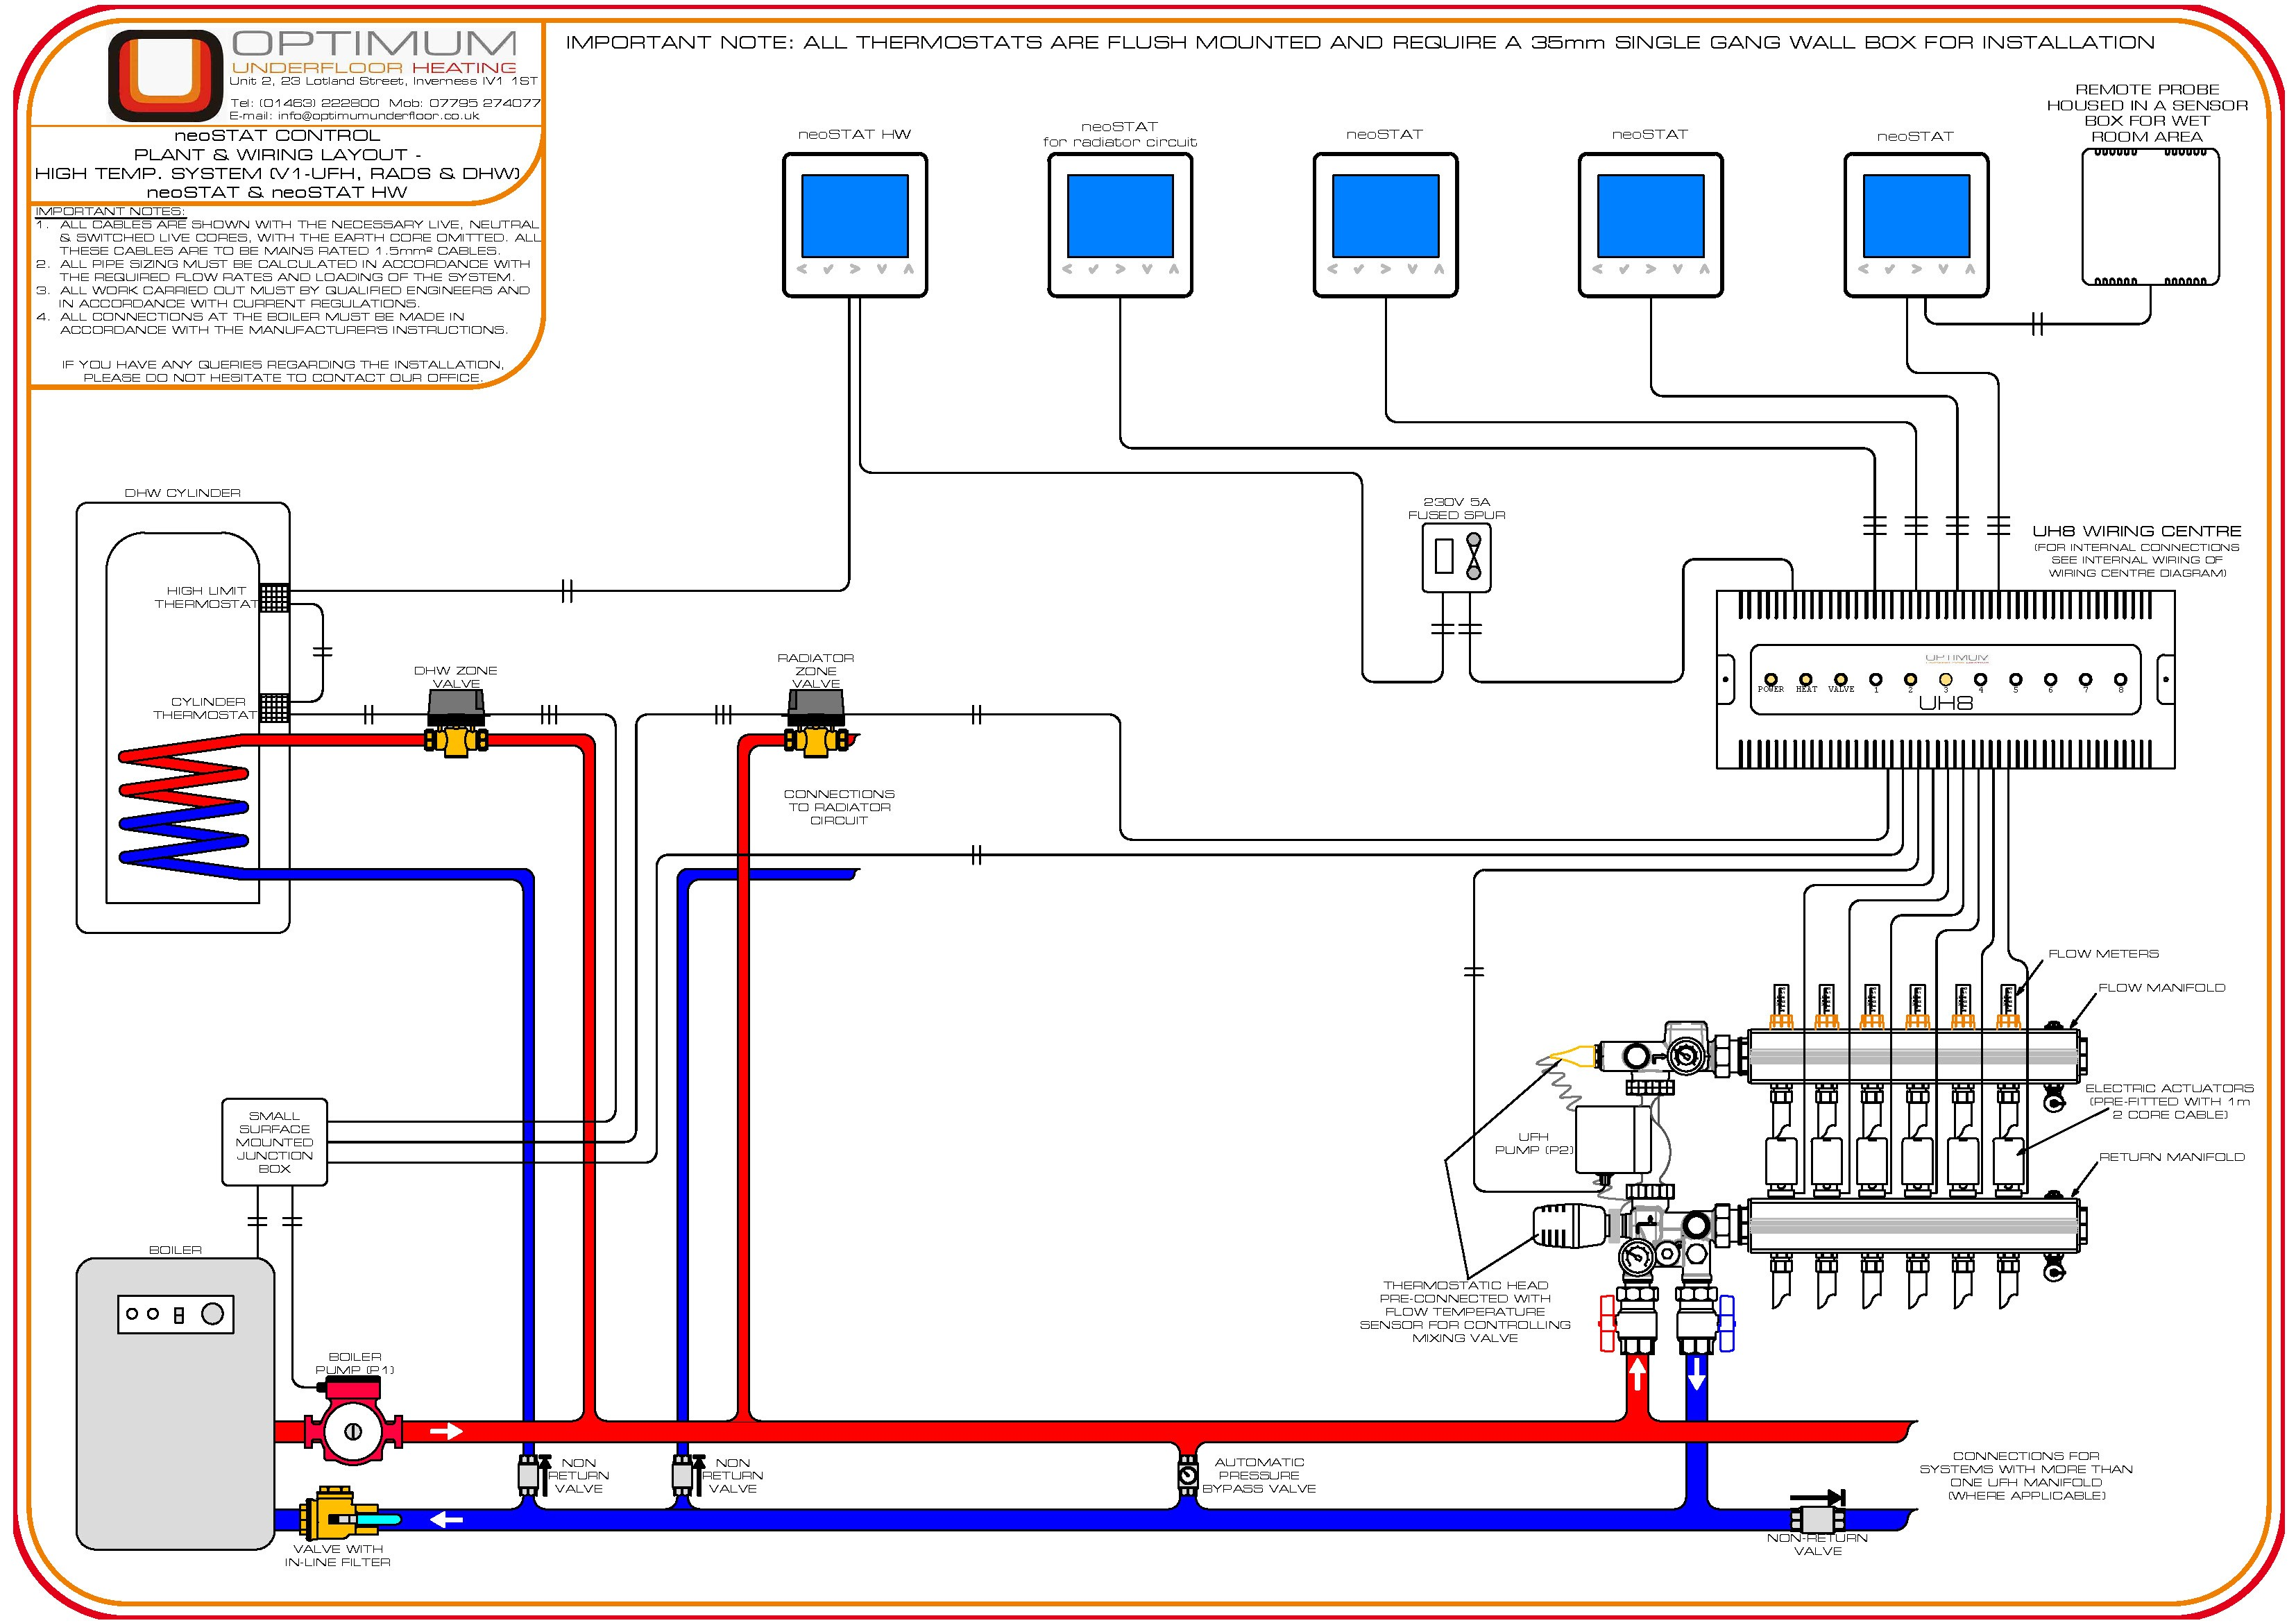 Wondrous Central Heating Zone Valve Wiring Diagram New Neostat Smart Home Wiring Cloud Waroletkolfr09Org